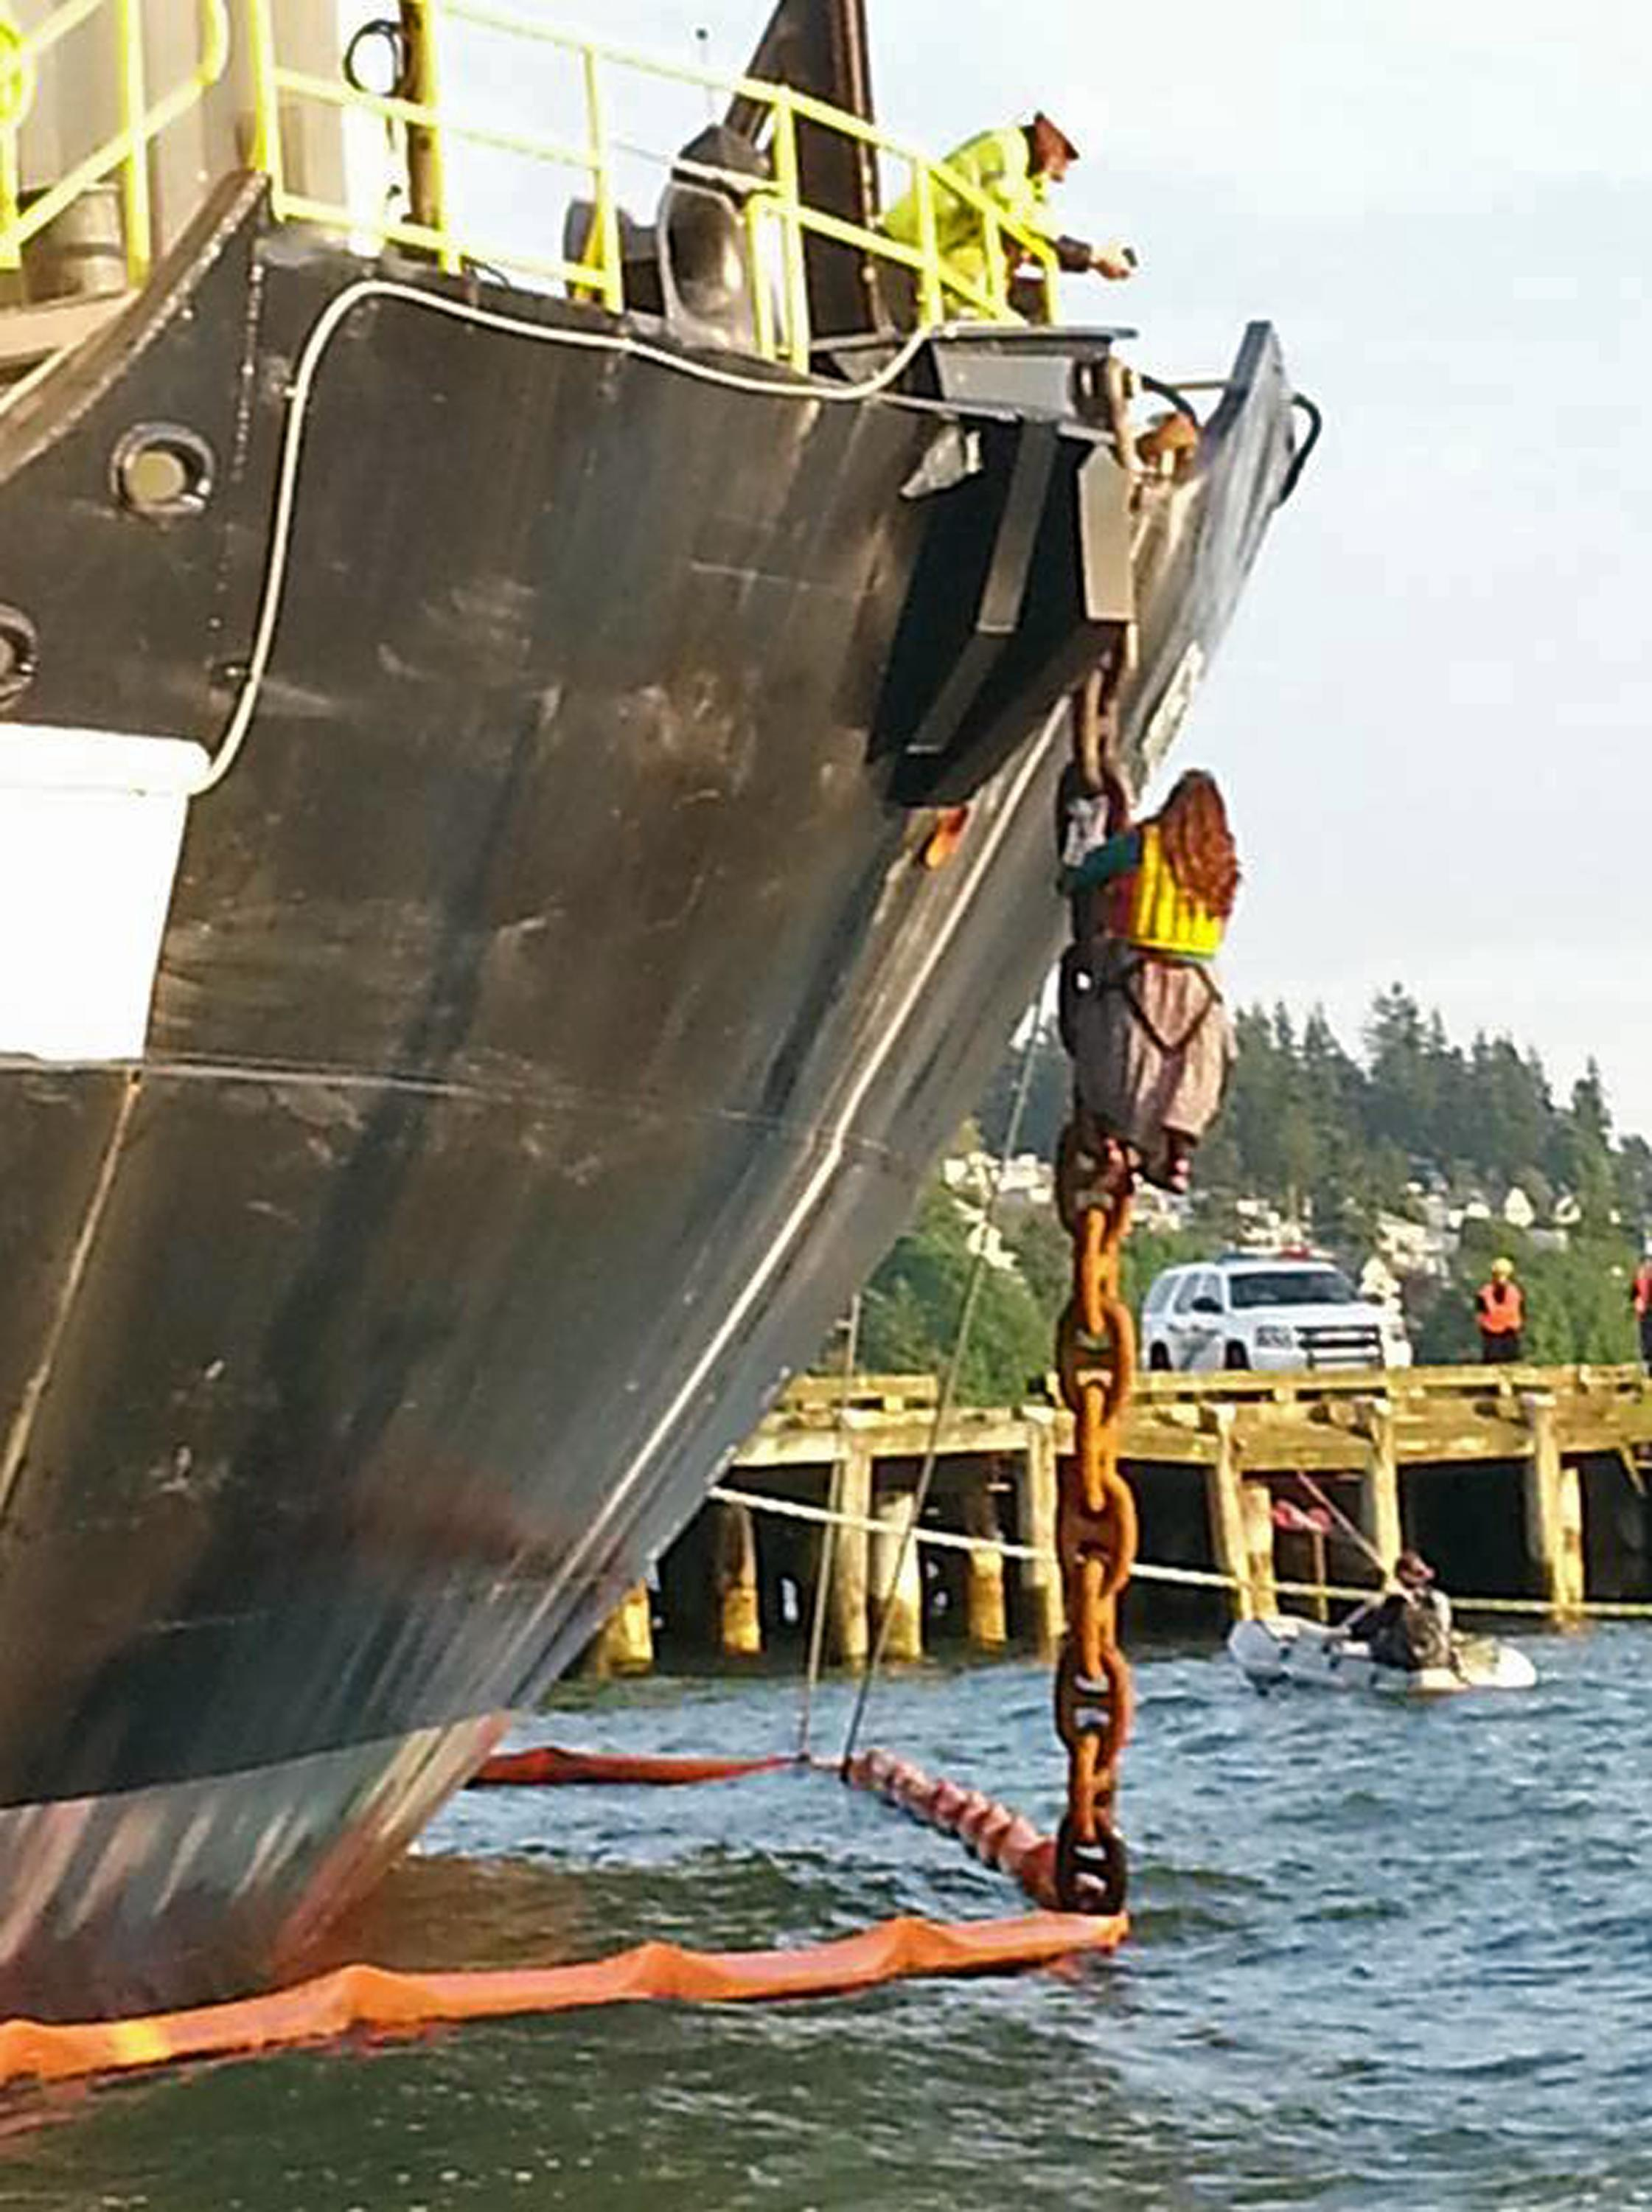 Protester leaves Shell ship north of Seattle; 1 remains